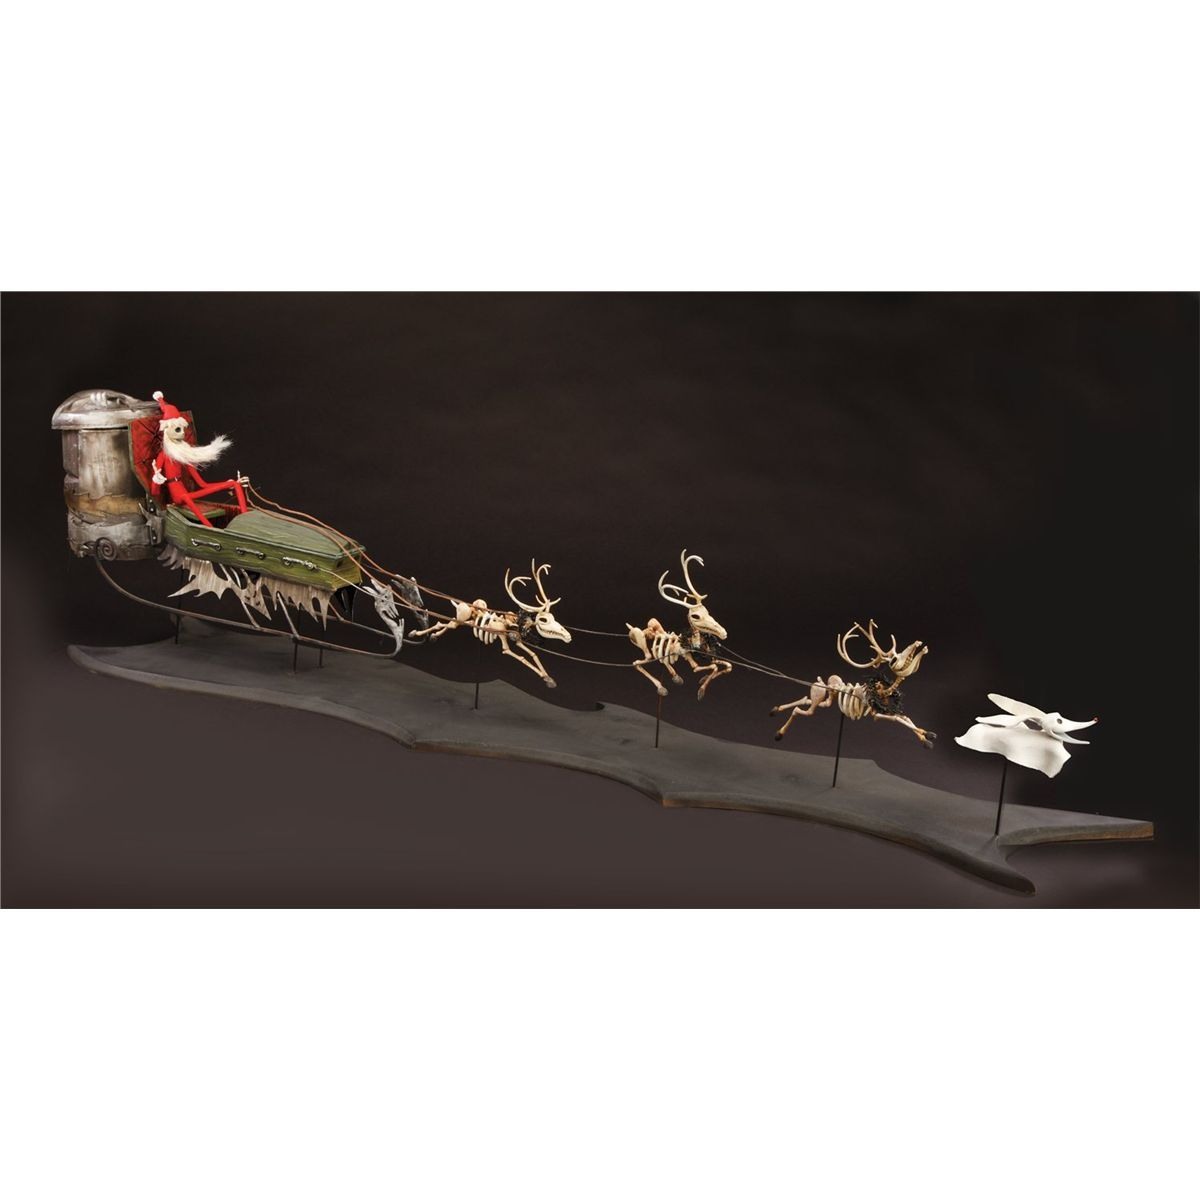 Original Santa Jack sleigh with Jack, Zero and reindeer from The ...